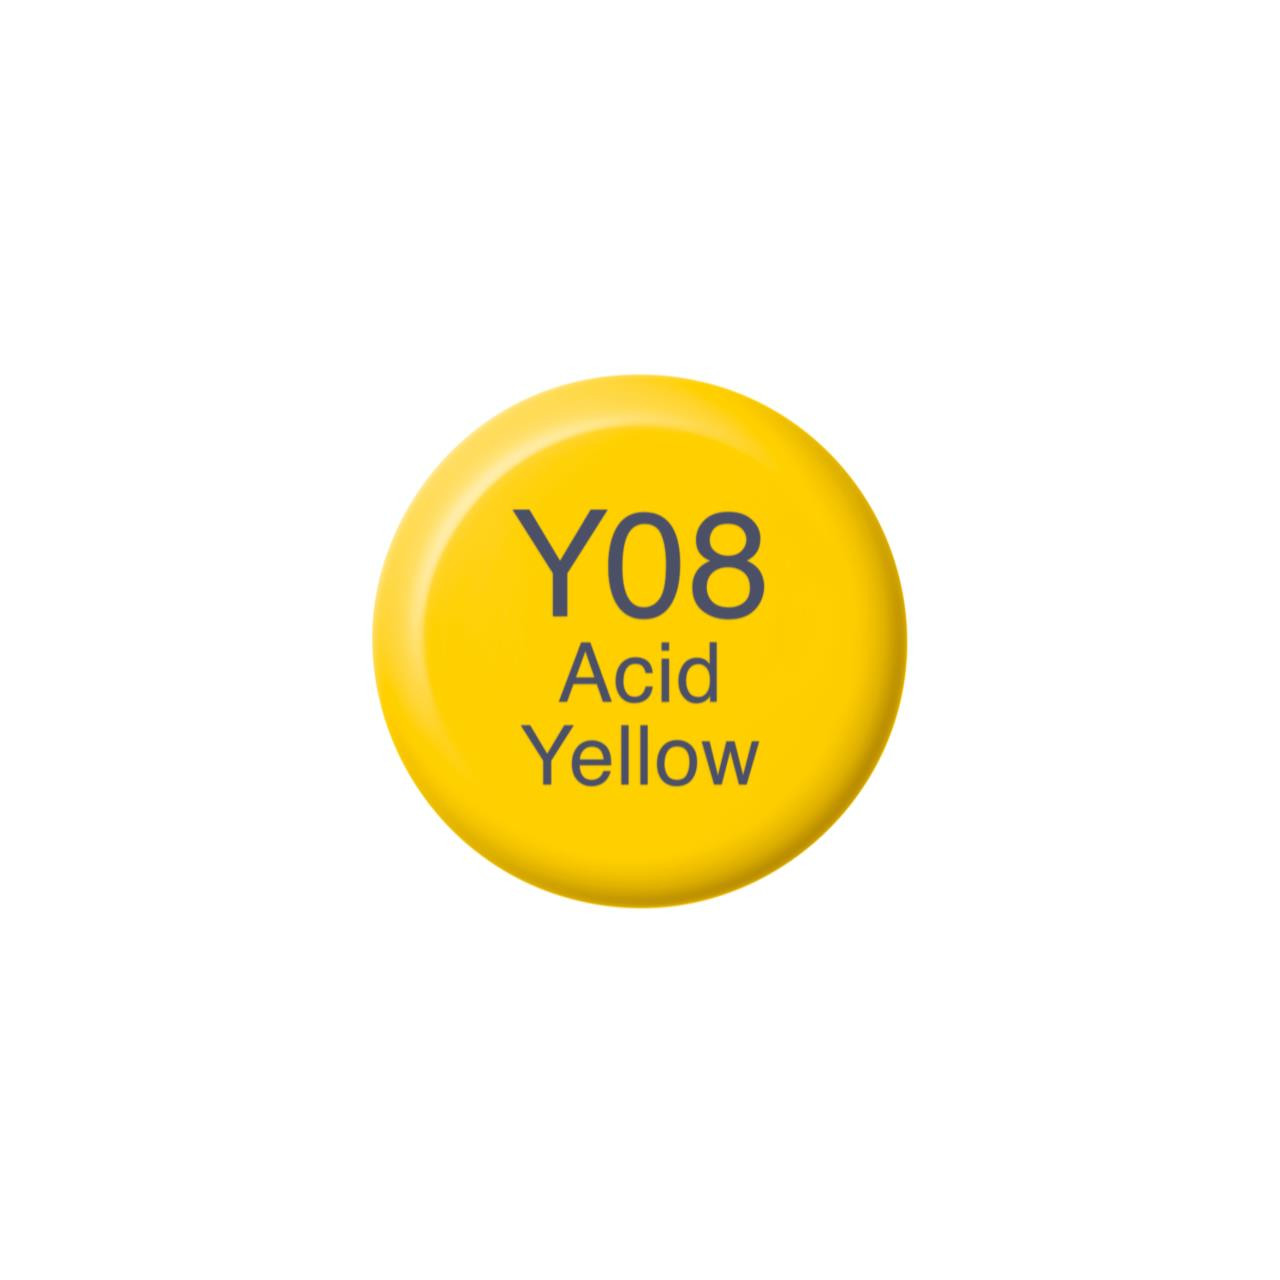 Y08 Acid Yellow, Copic Ink - 4511338058190